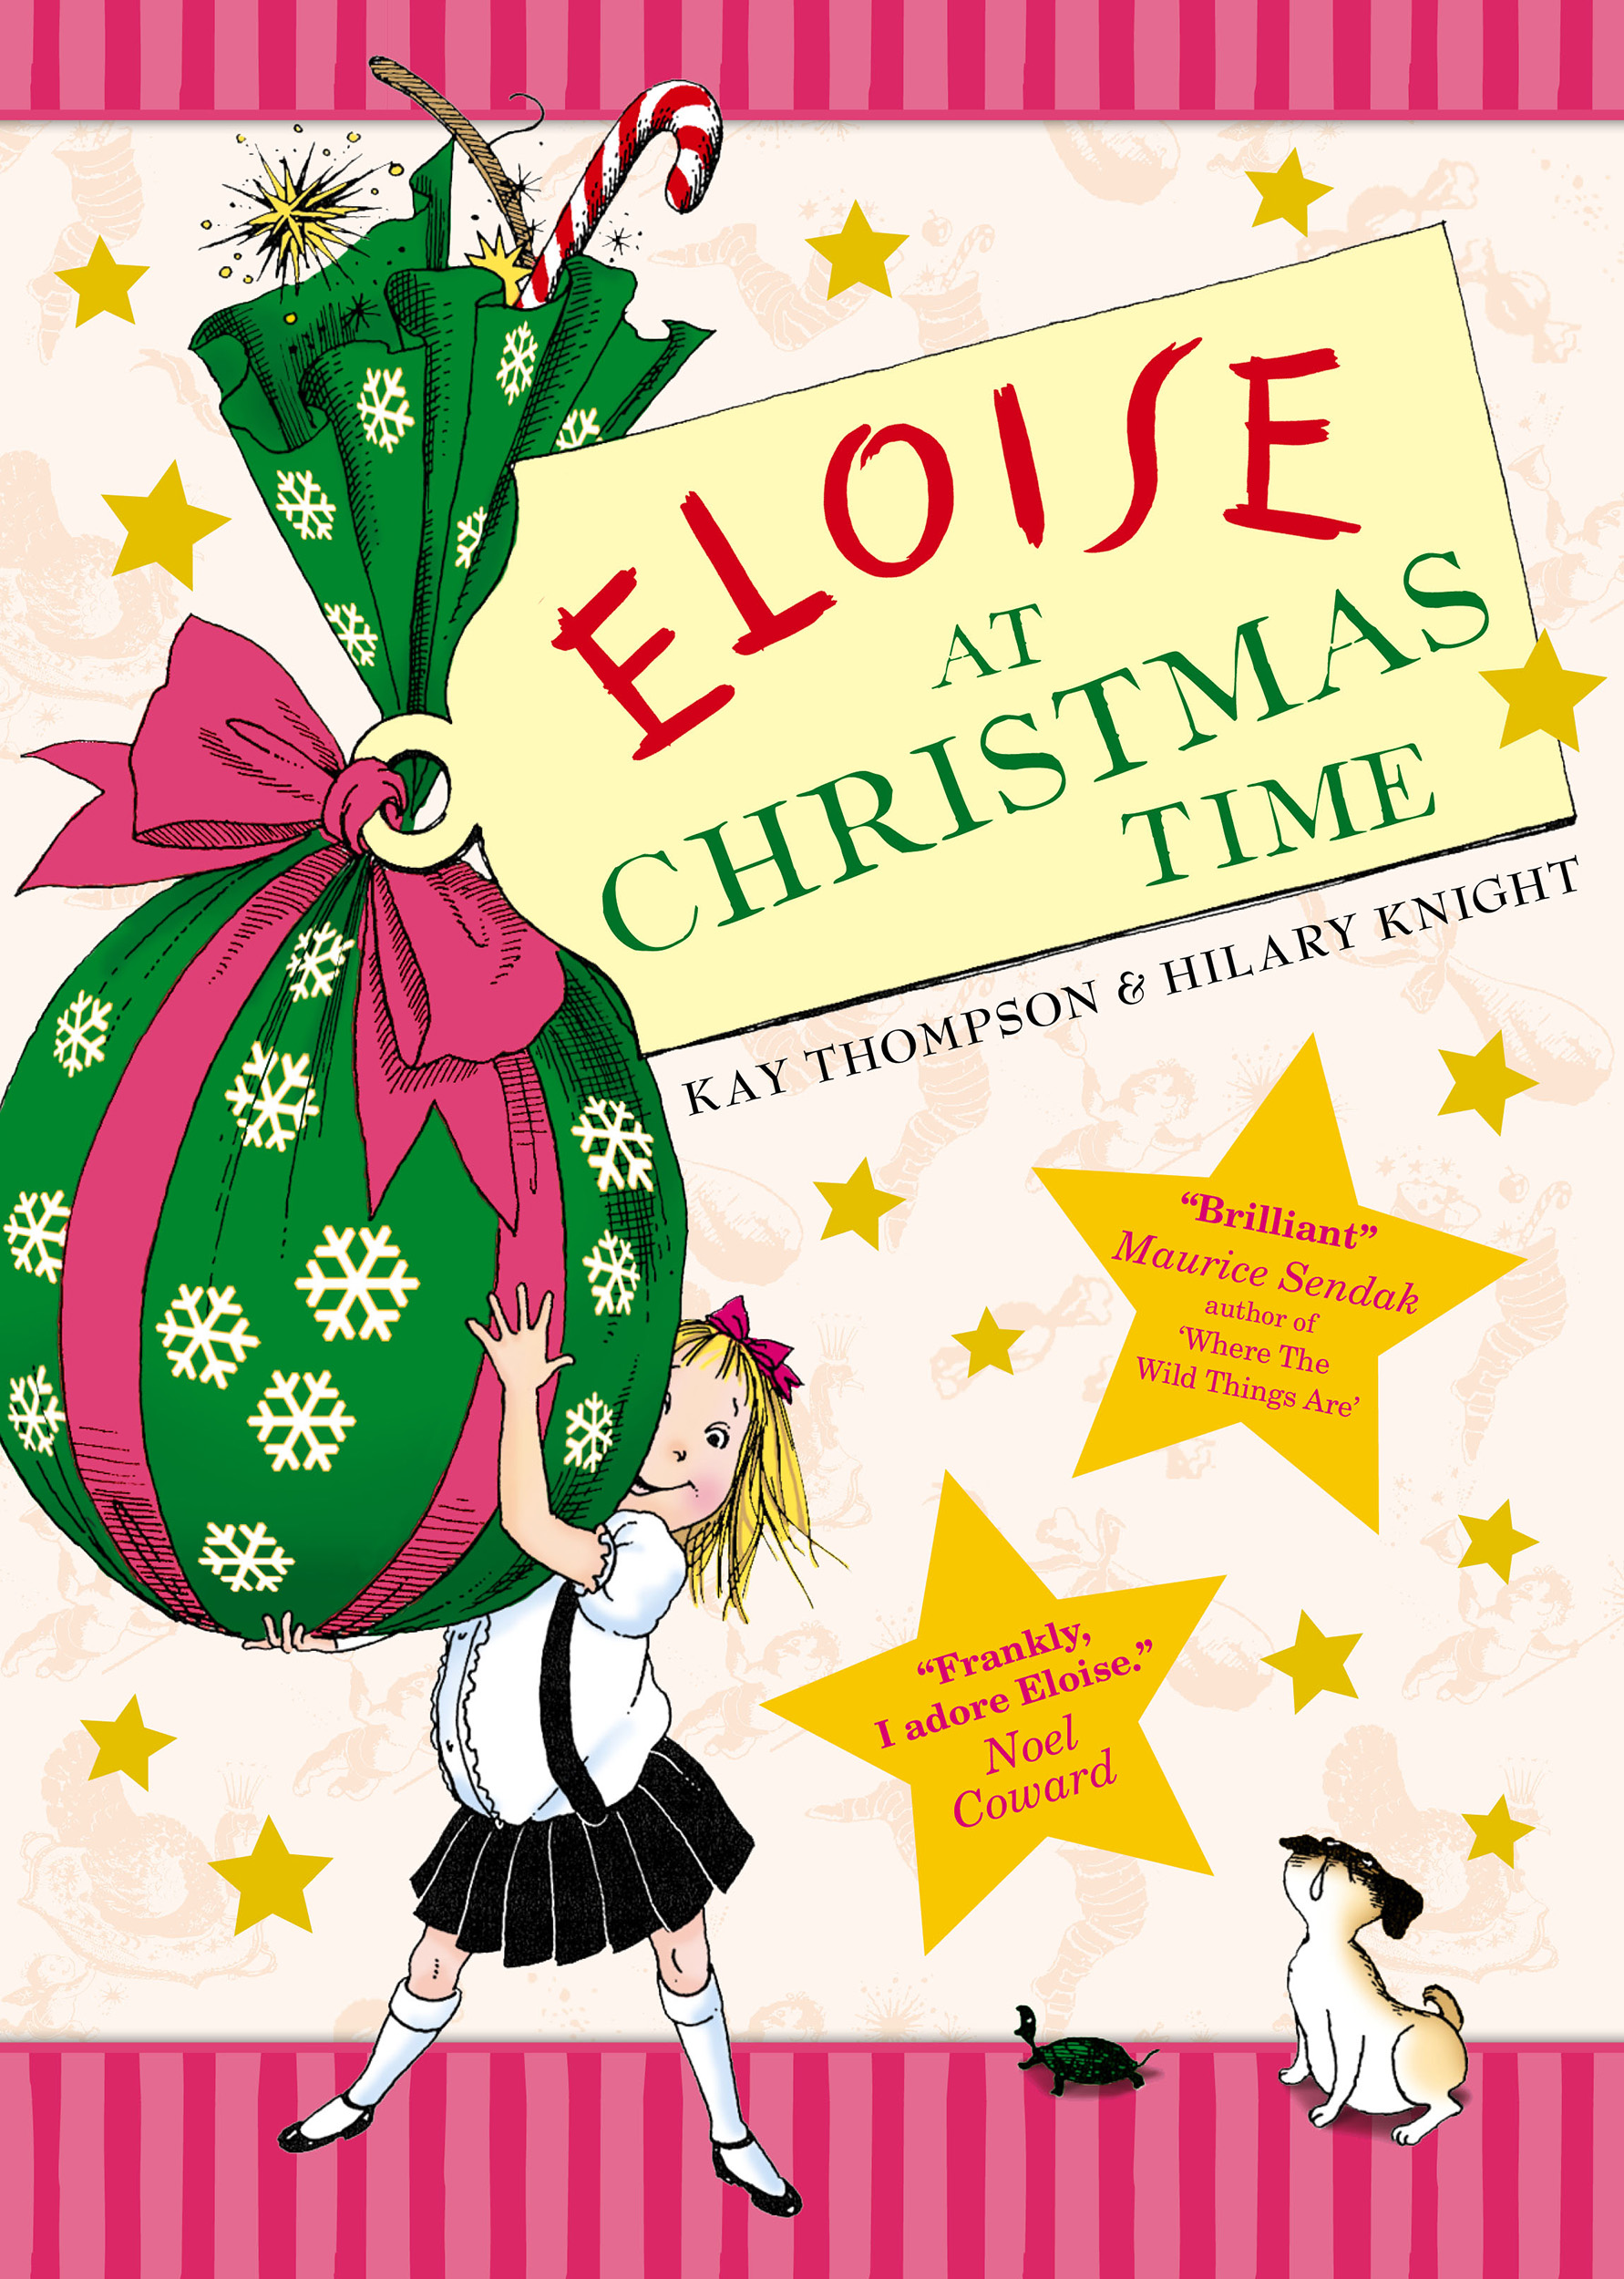 Eloise At Christmastime | Book by Kay Thompson, Hilary Knight ...